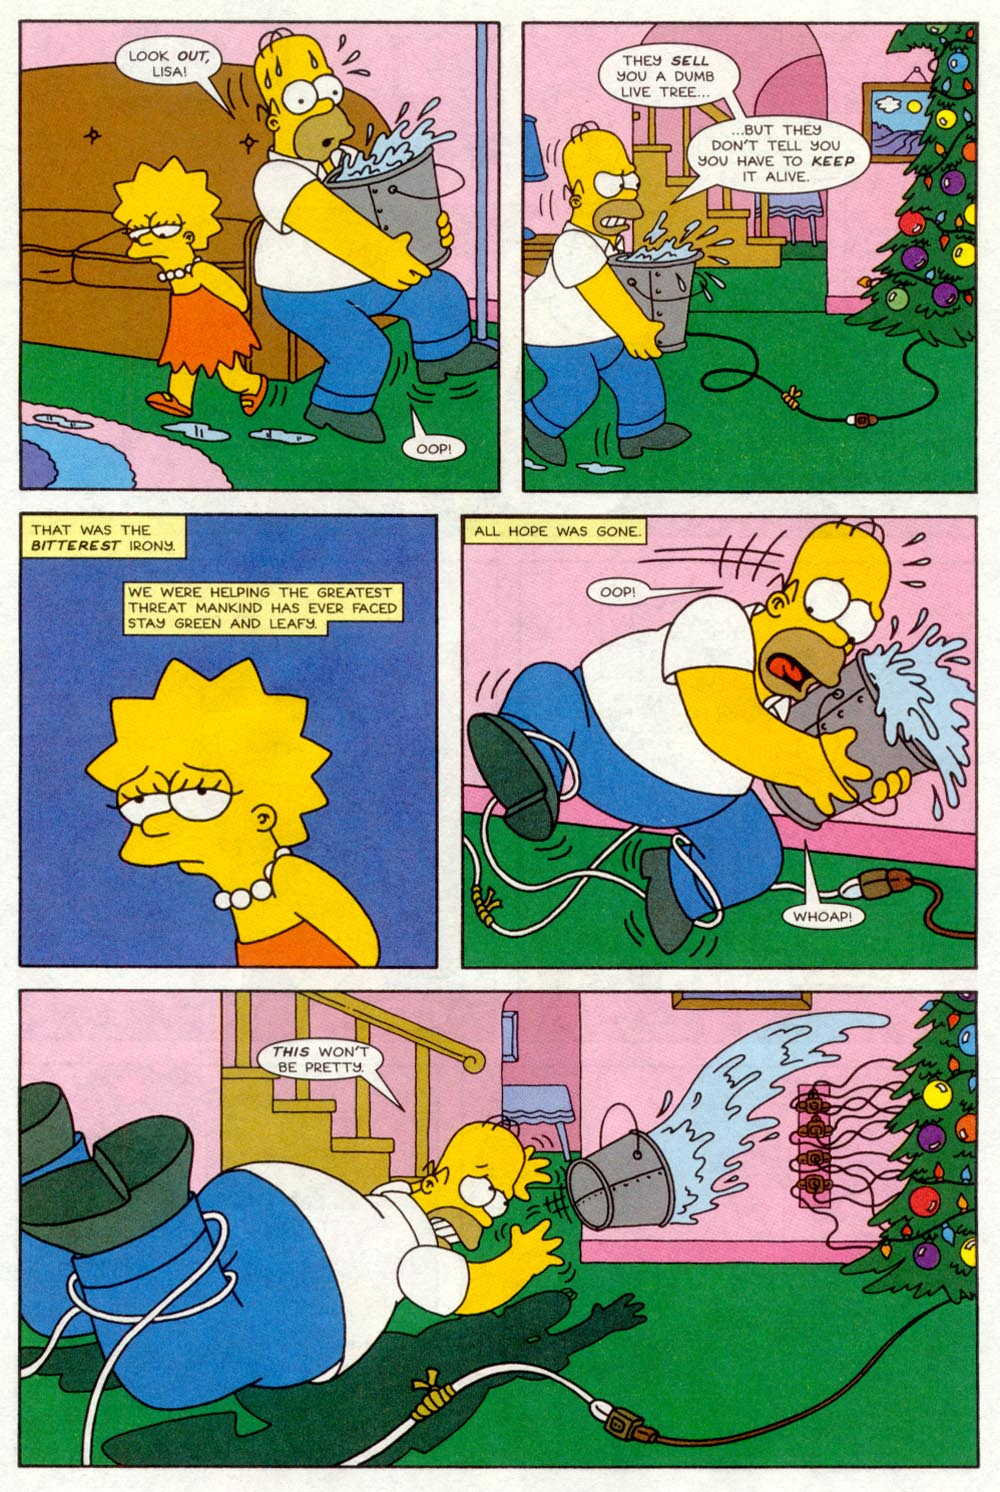 Read online Treehouse of Horror comic -  Issue #4 - 13